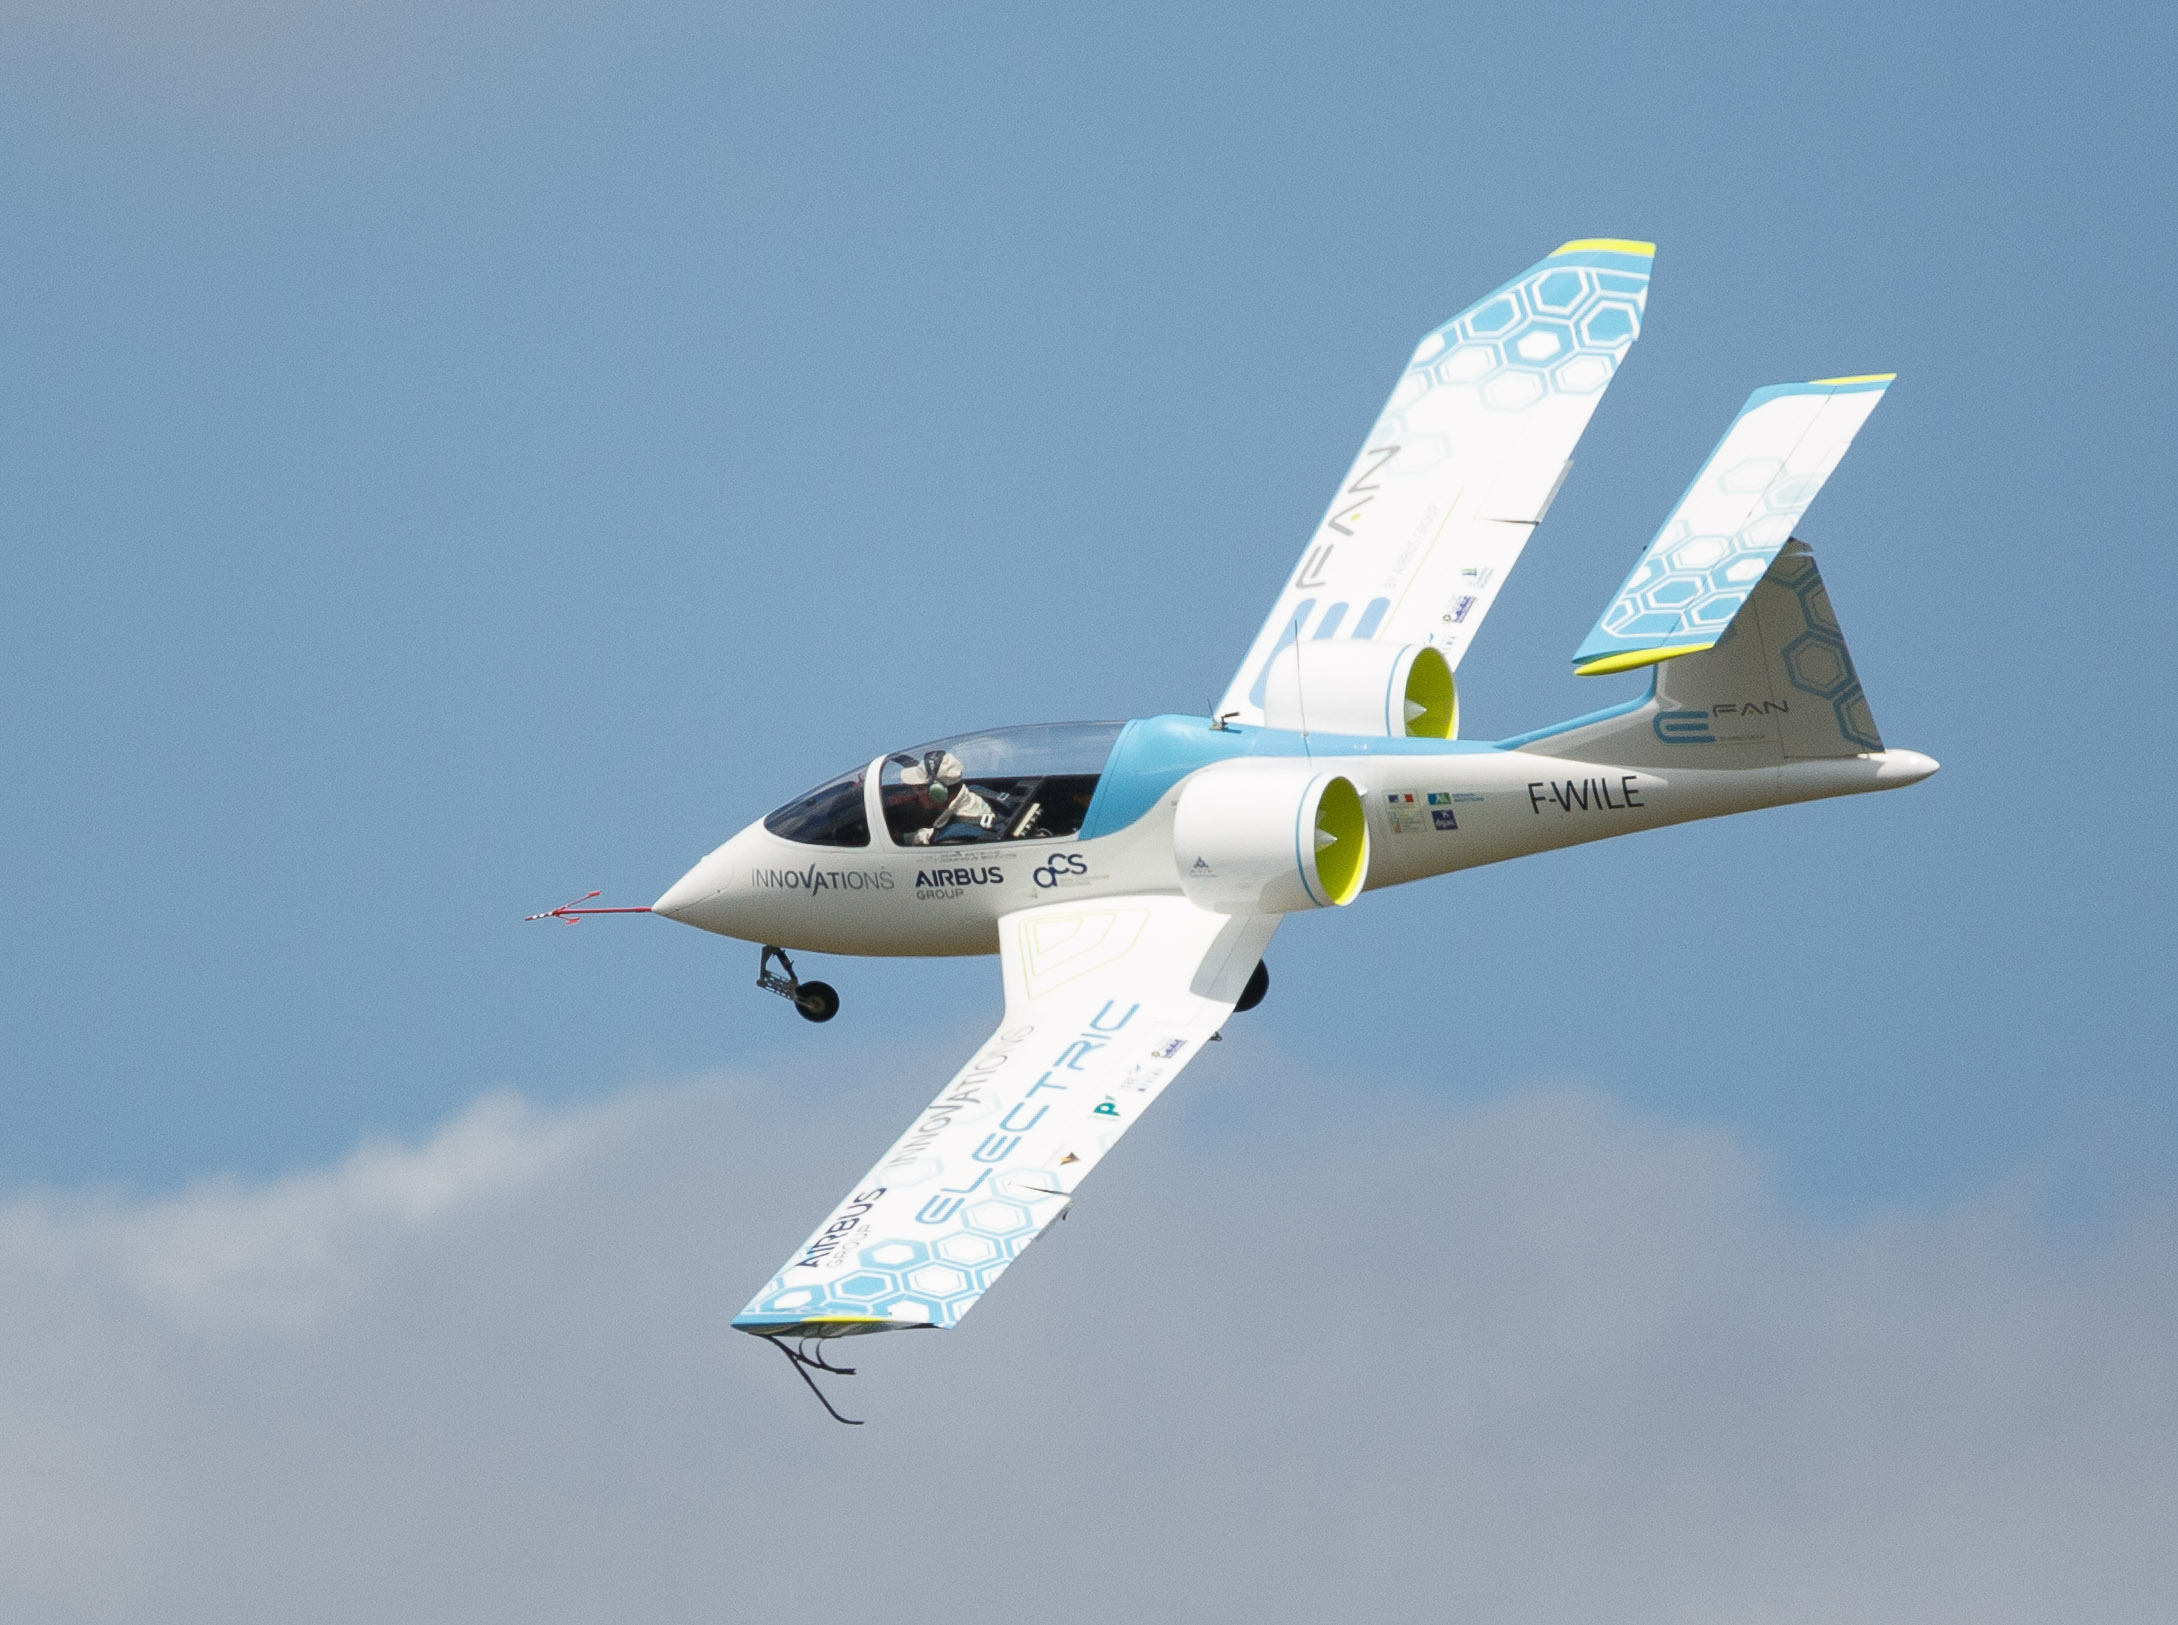 The Airbus E-Fan flying over the Farnborough International Airshow in the UK.